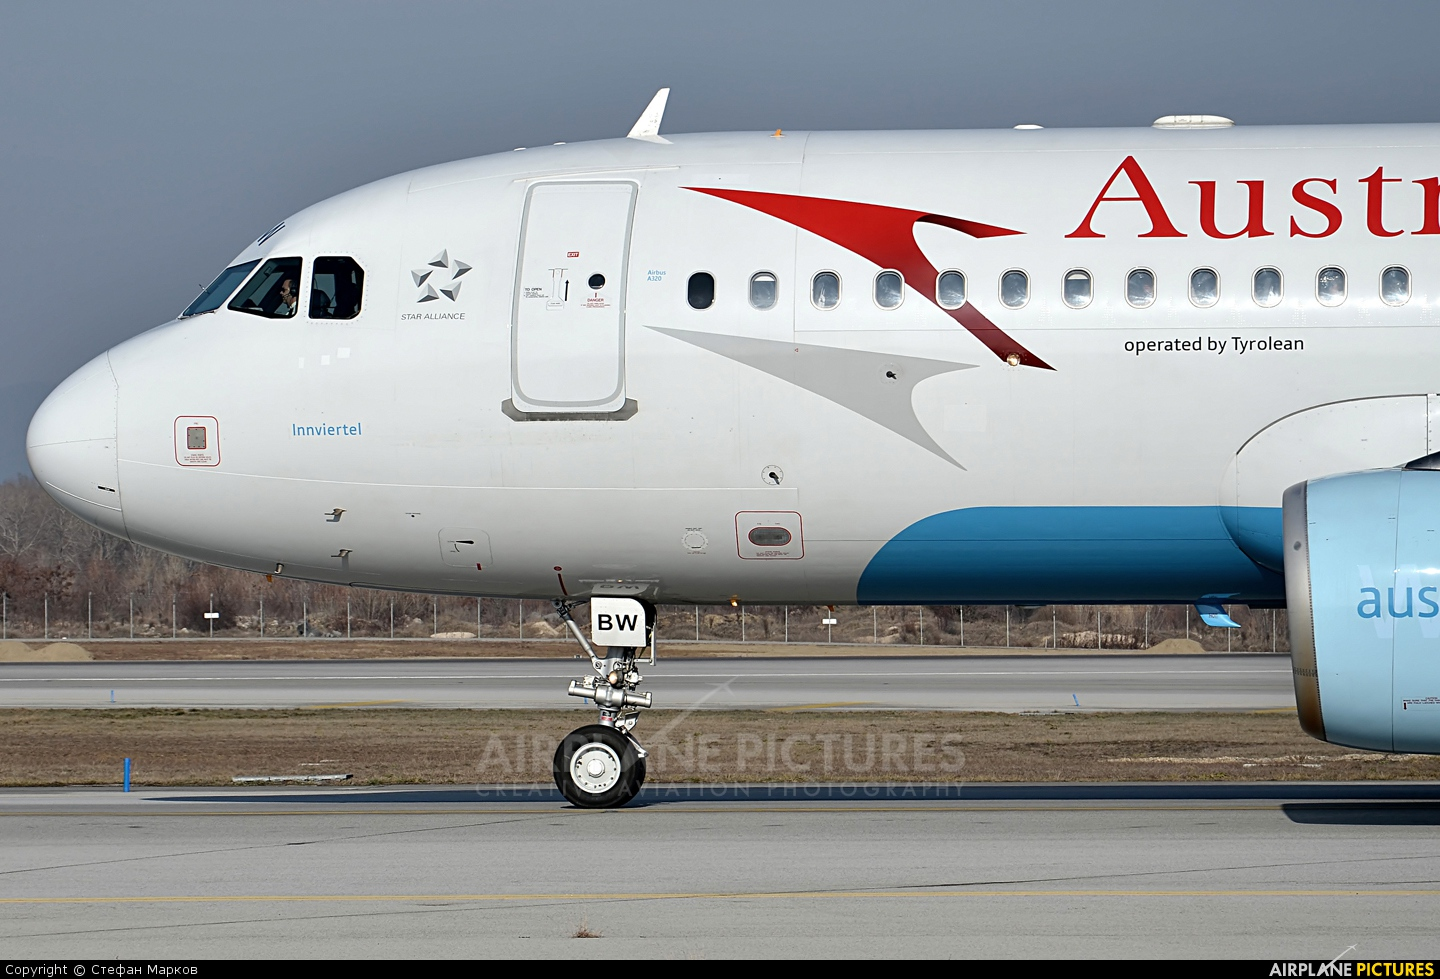 Austrian Airlines/Arrows/Tyrolean OE-LBW aircraft at Sofia